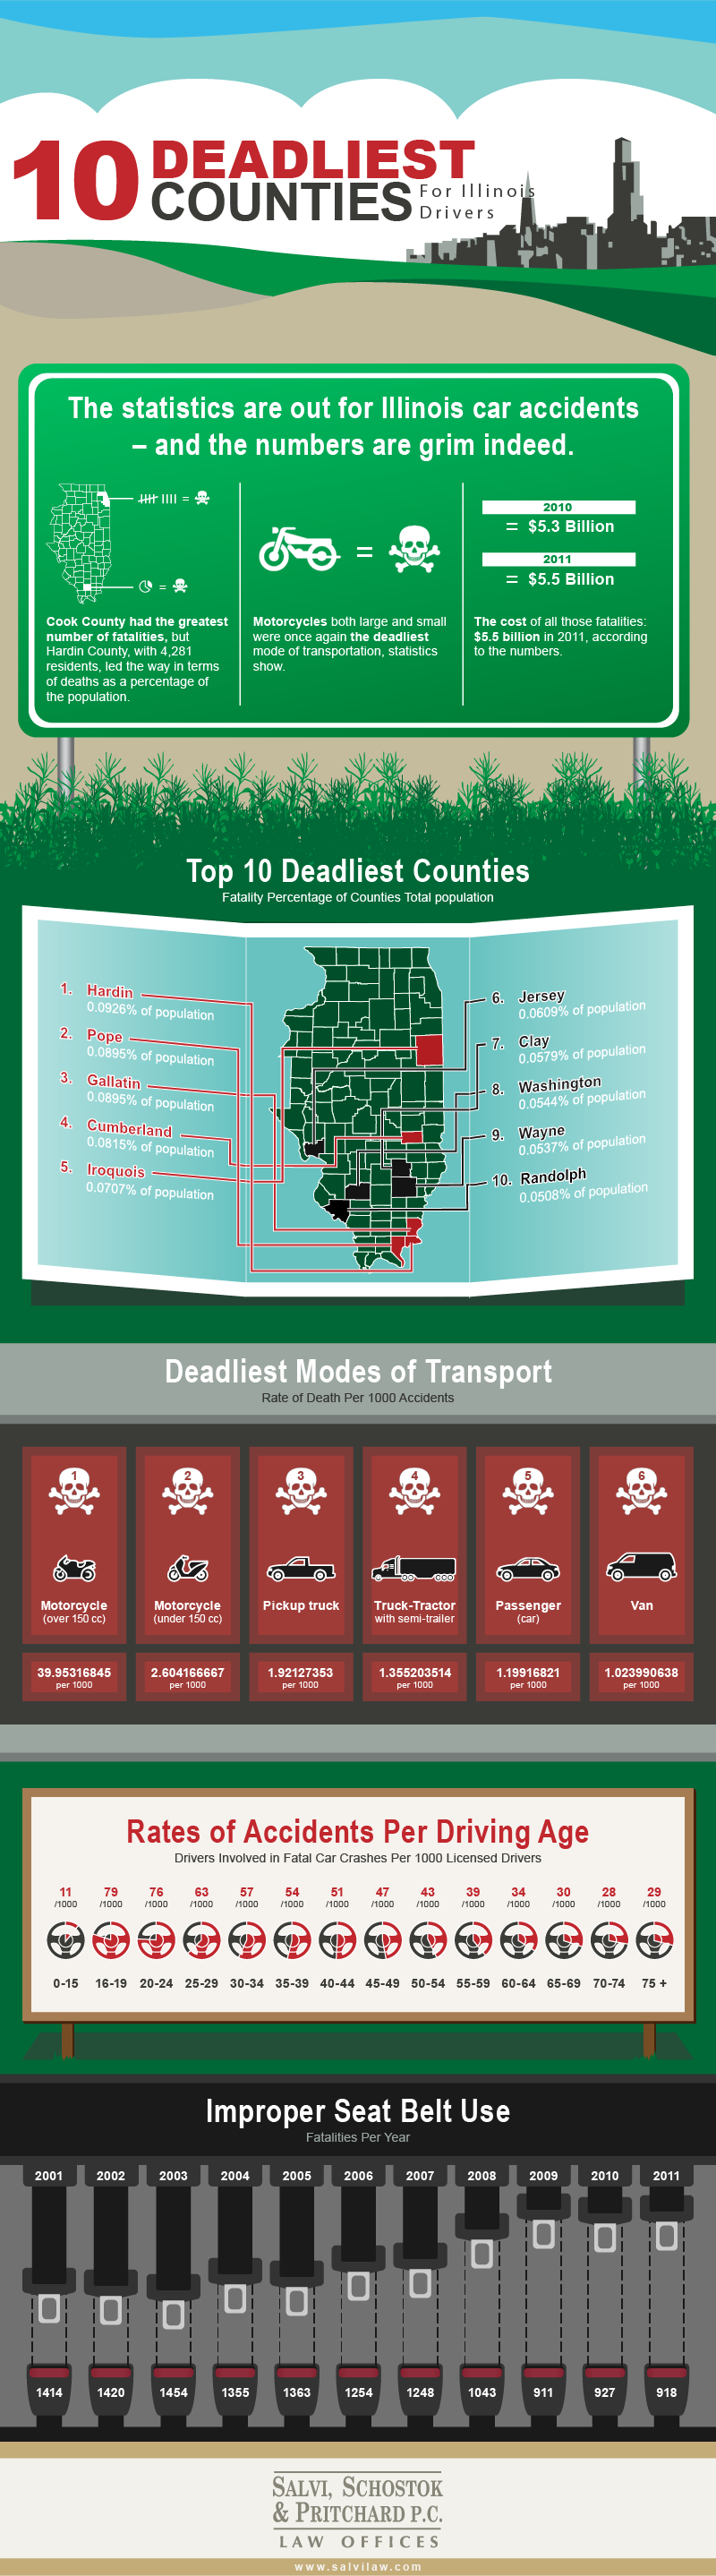 10 Deadliest Counties for Illinois Drivers